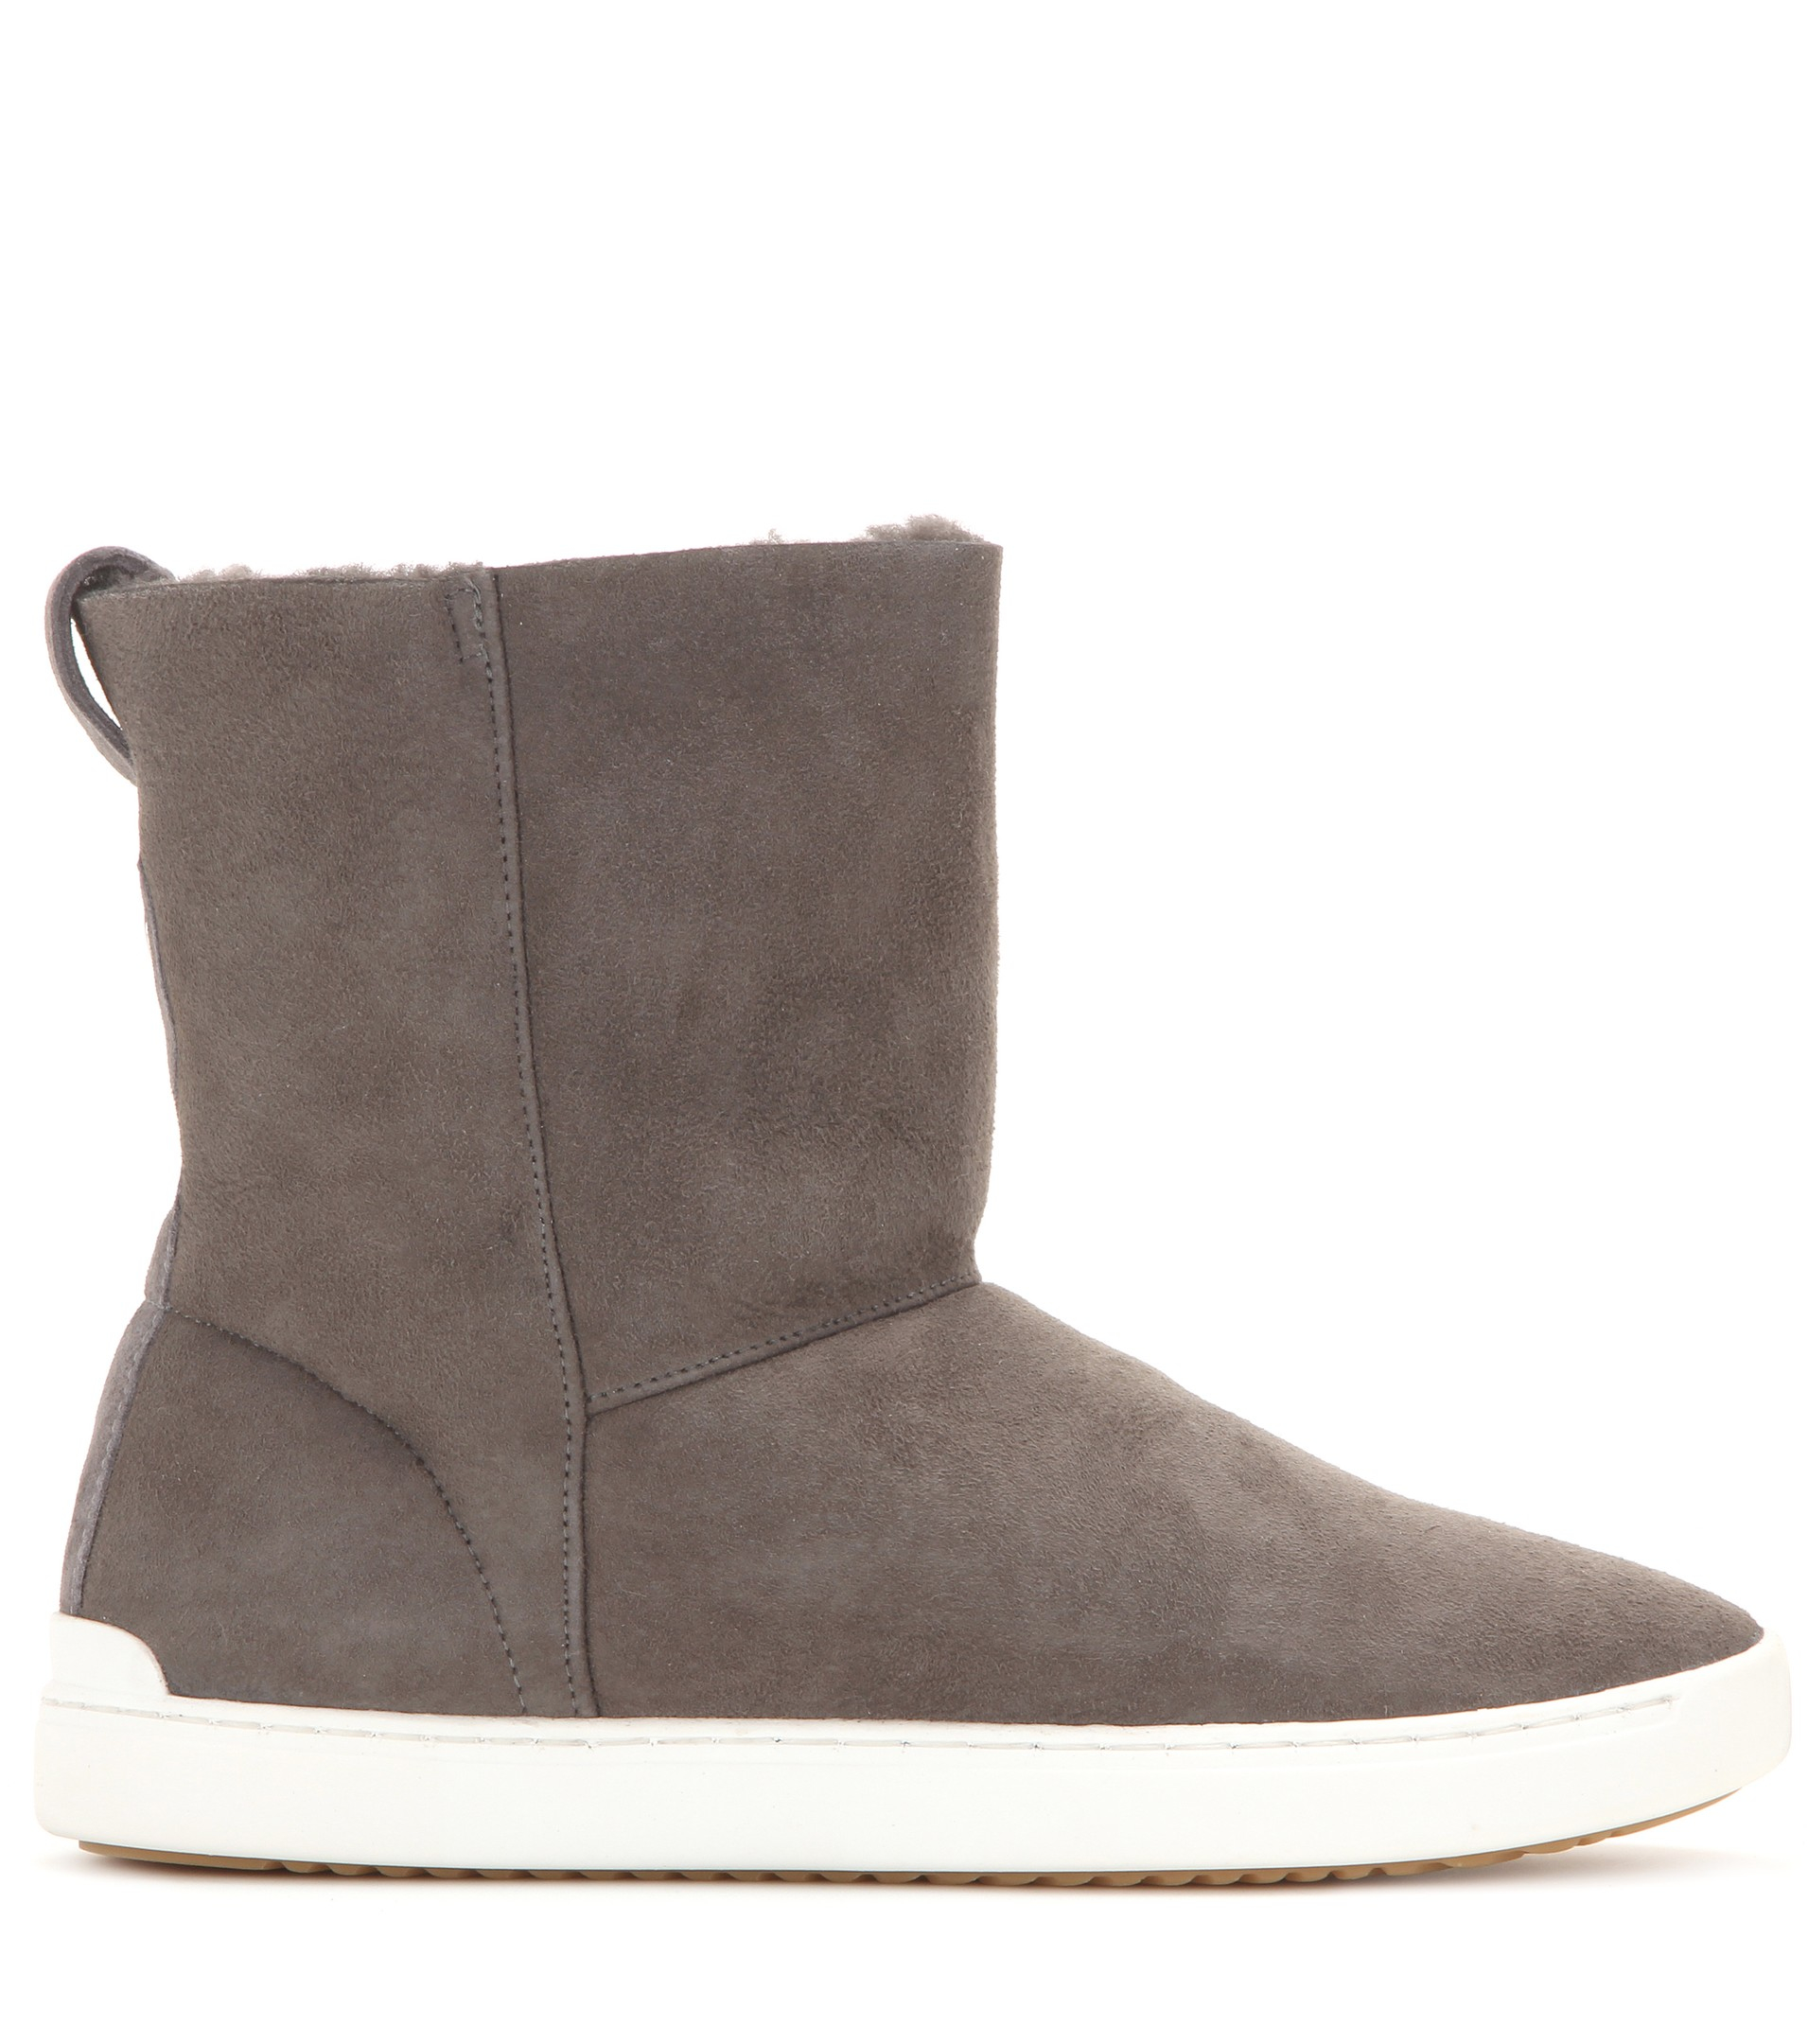 Rag & Bone Kali Shearling-Lined Ankle Boots in Granite Suede (Grey)